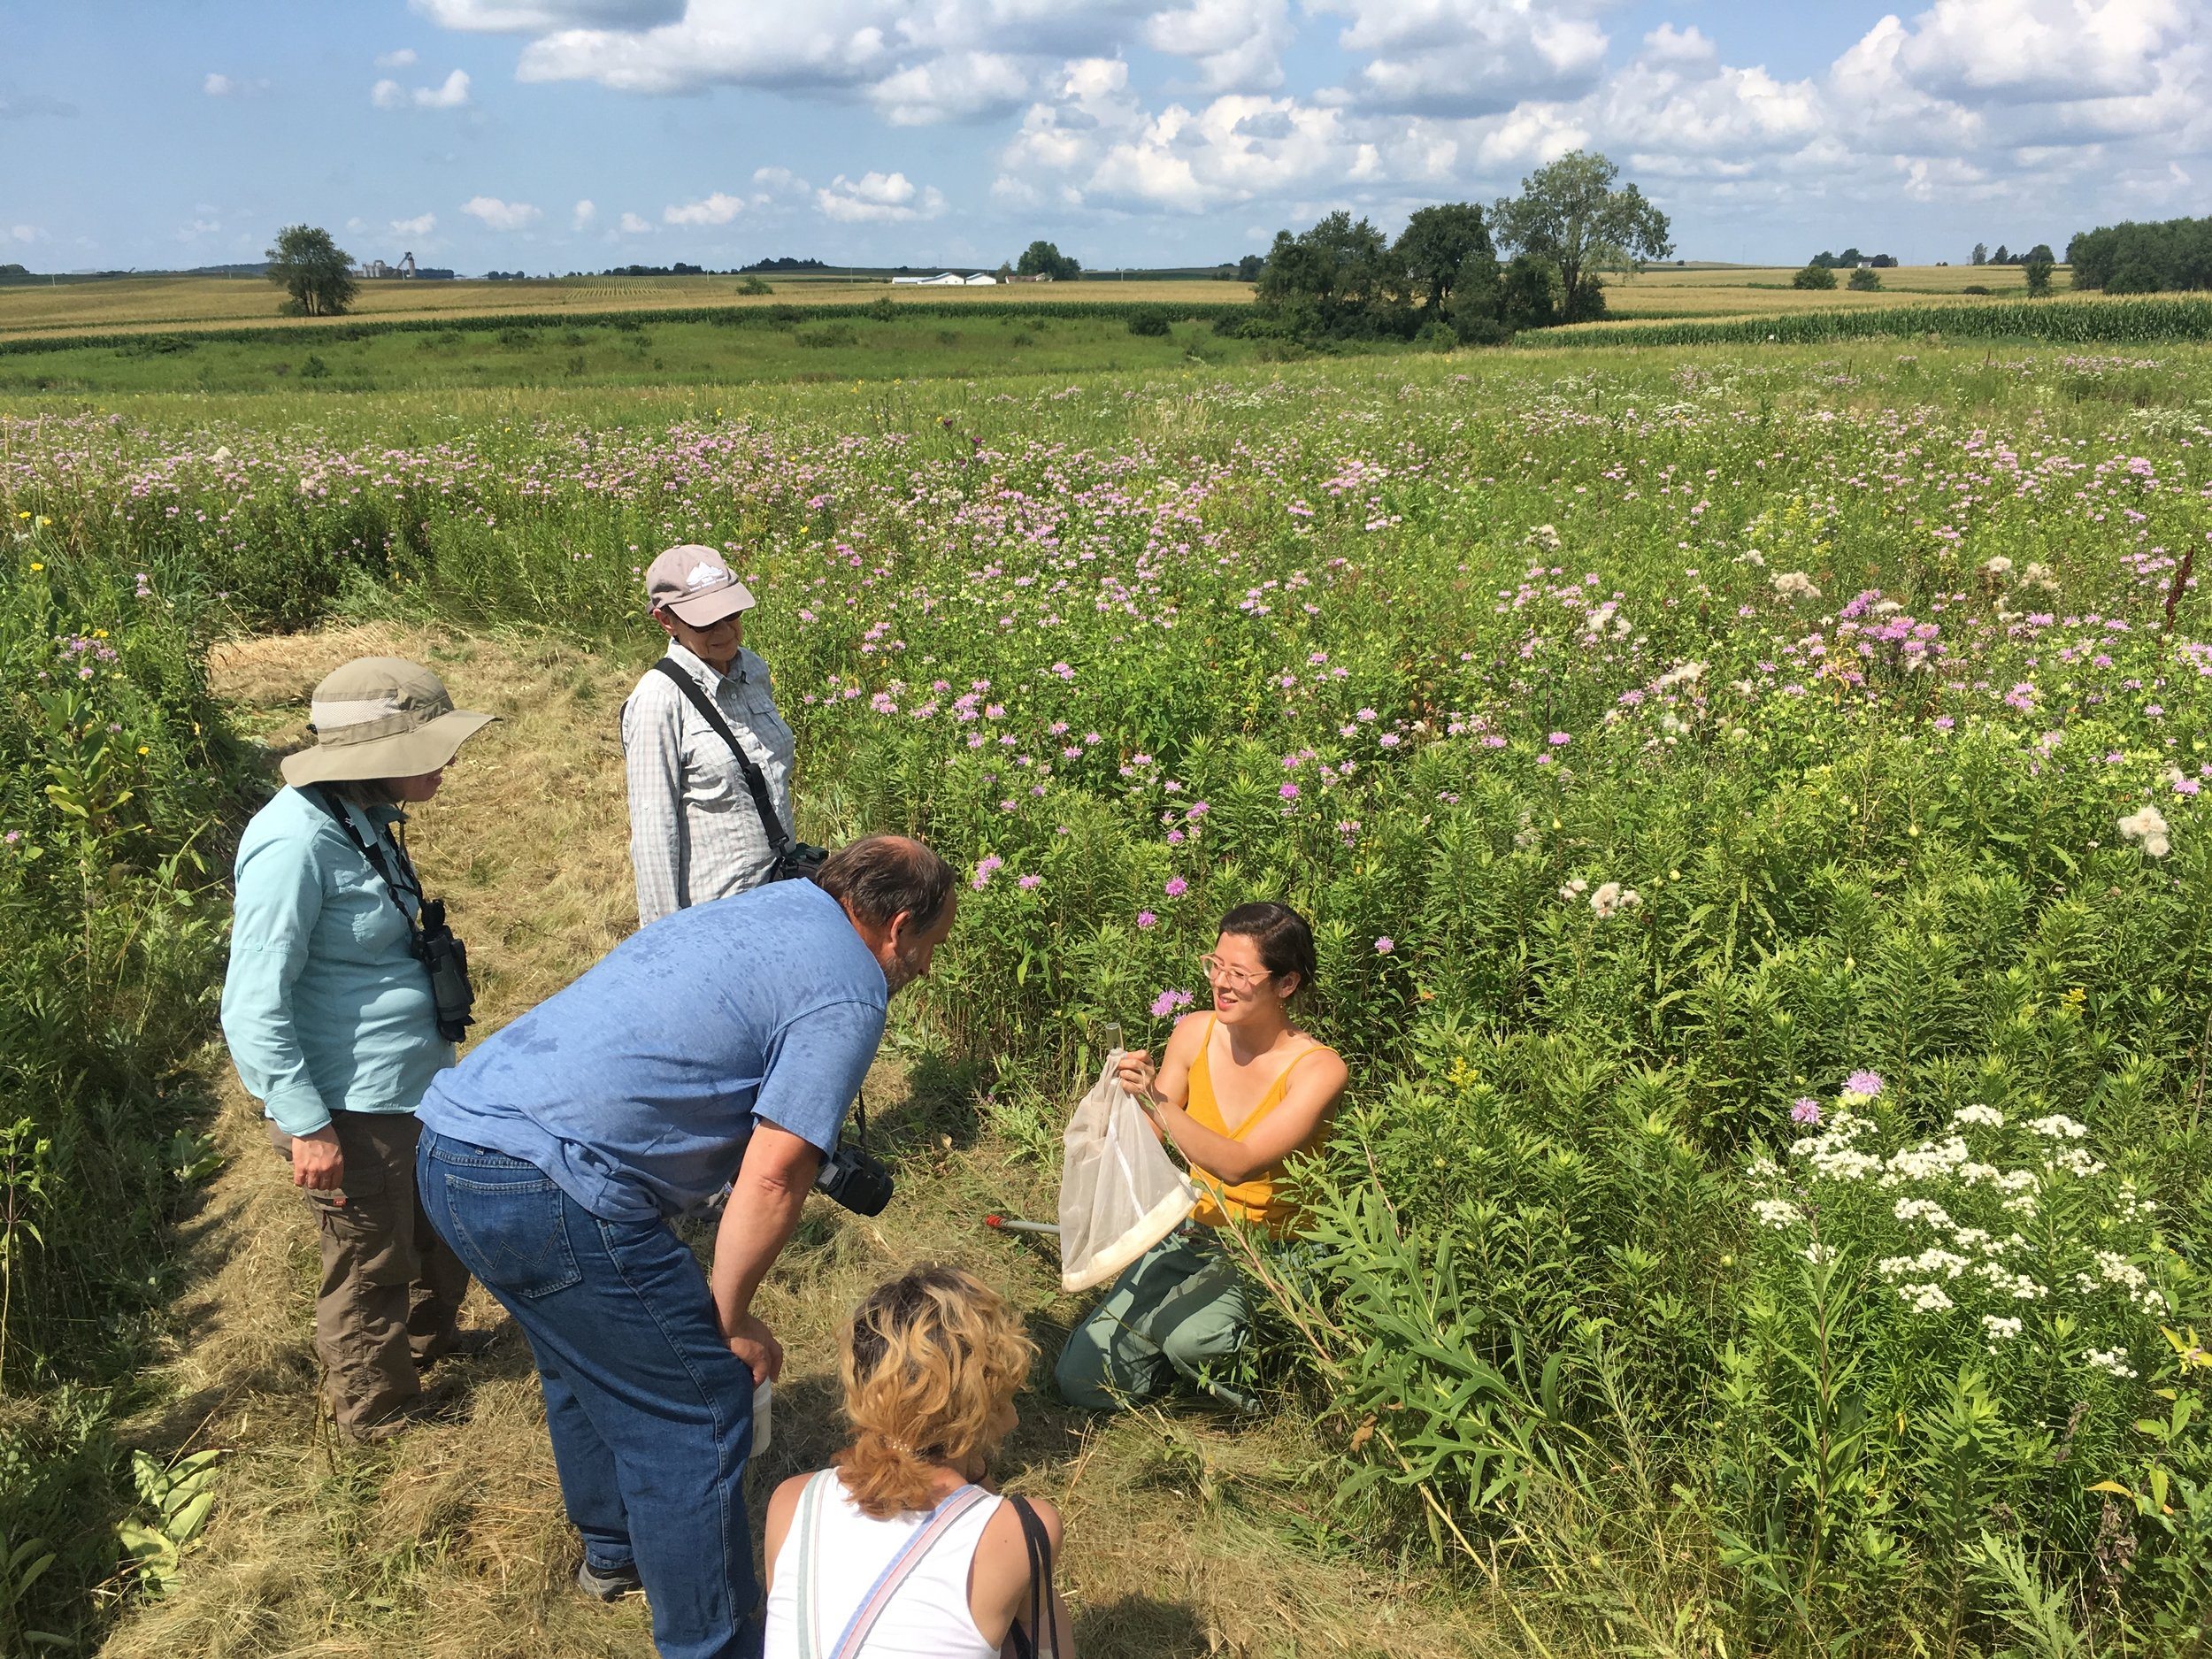 Participants of our August 3, 2019 bumble bee walk field trip at Goose Pond Sanctuary got to see first-hand the rusty-patched bumble bee! Photo by Graham Steinhauer